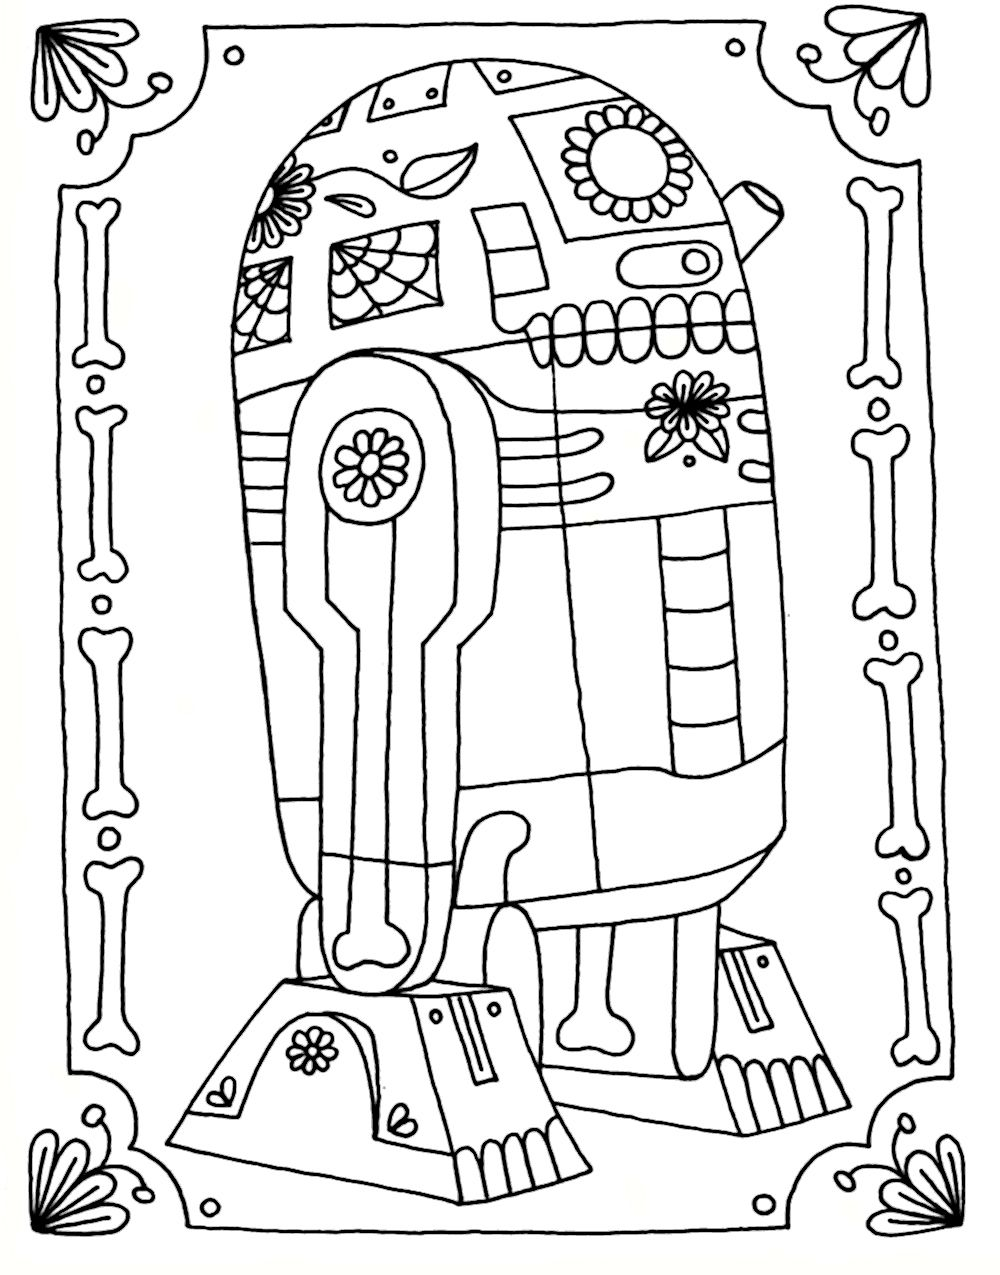 shock troopers coloring pages - photo#29